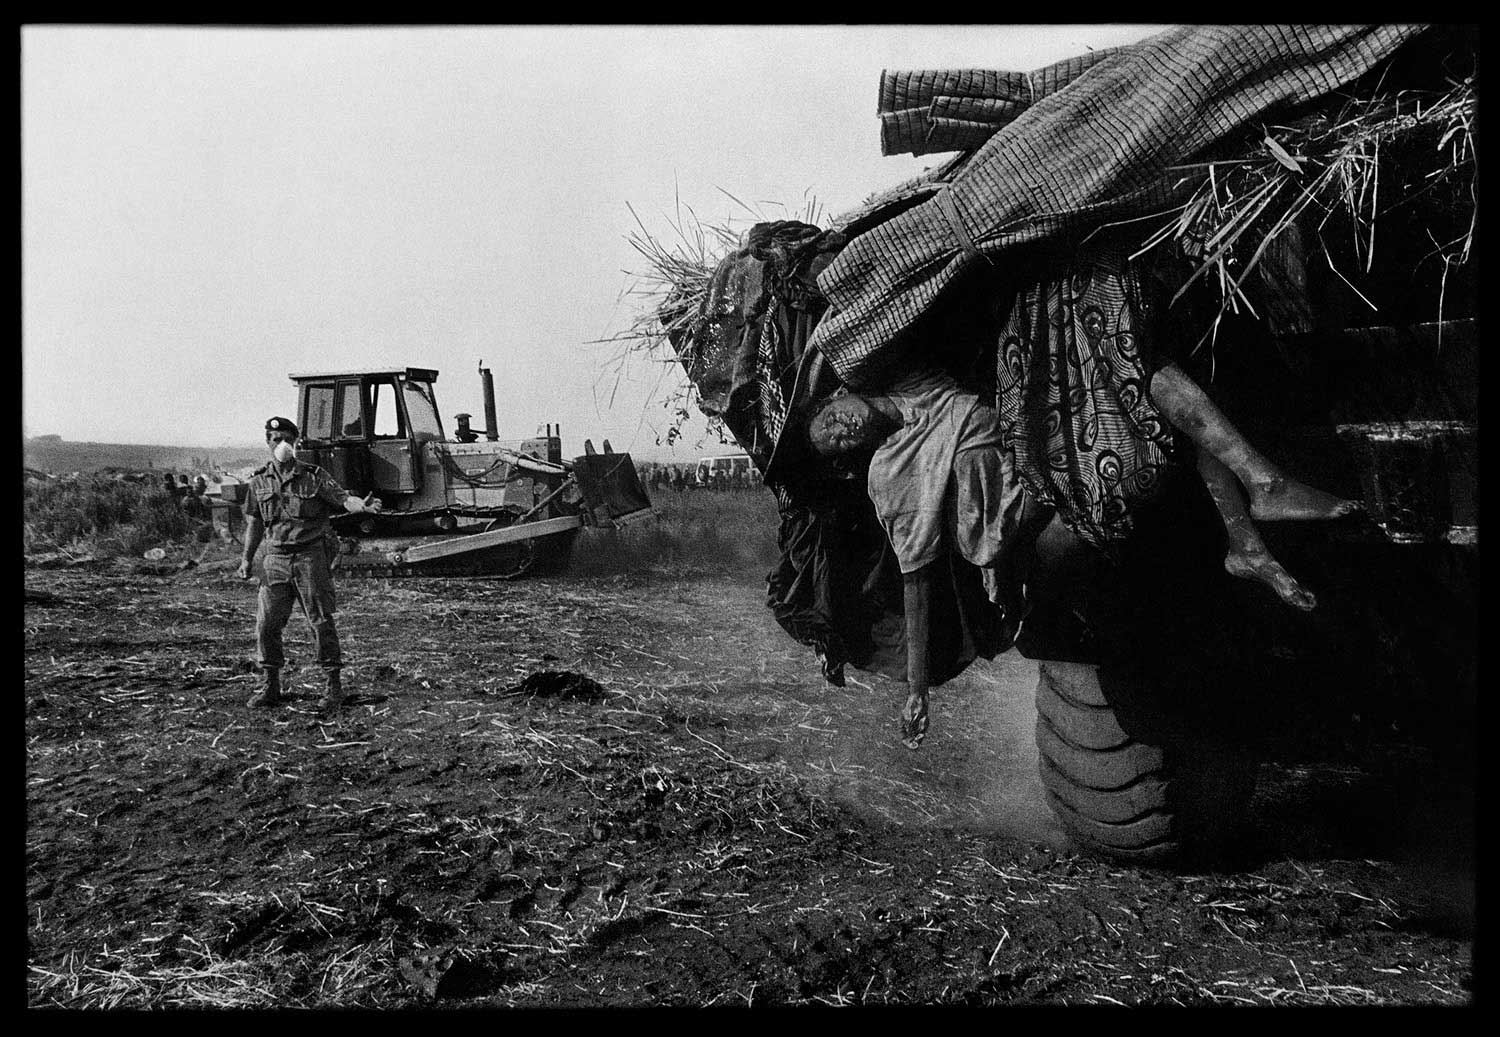 To help stop the deadly momentum of the disease, the French army mobilized earth-moving equipment in Zaire to remove and bury the dead en masse, Zaire, 1994.